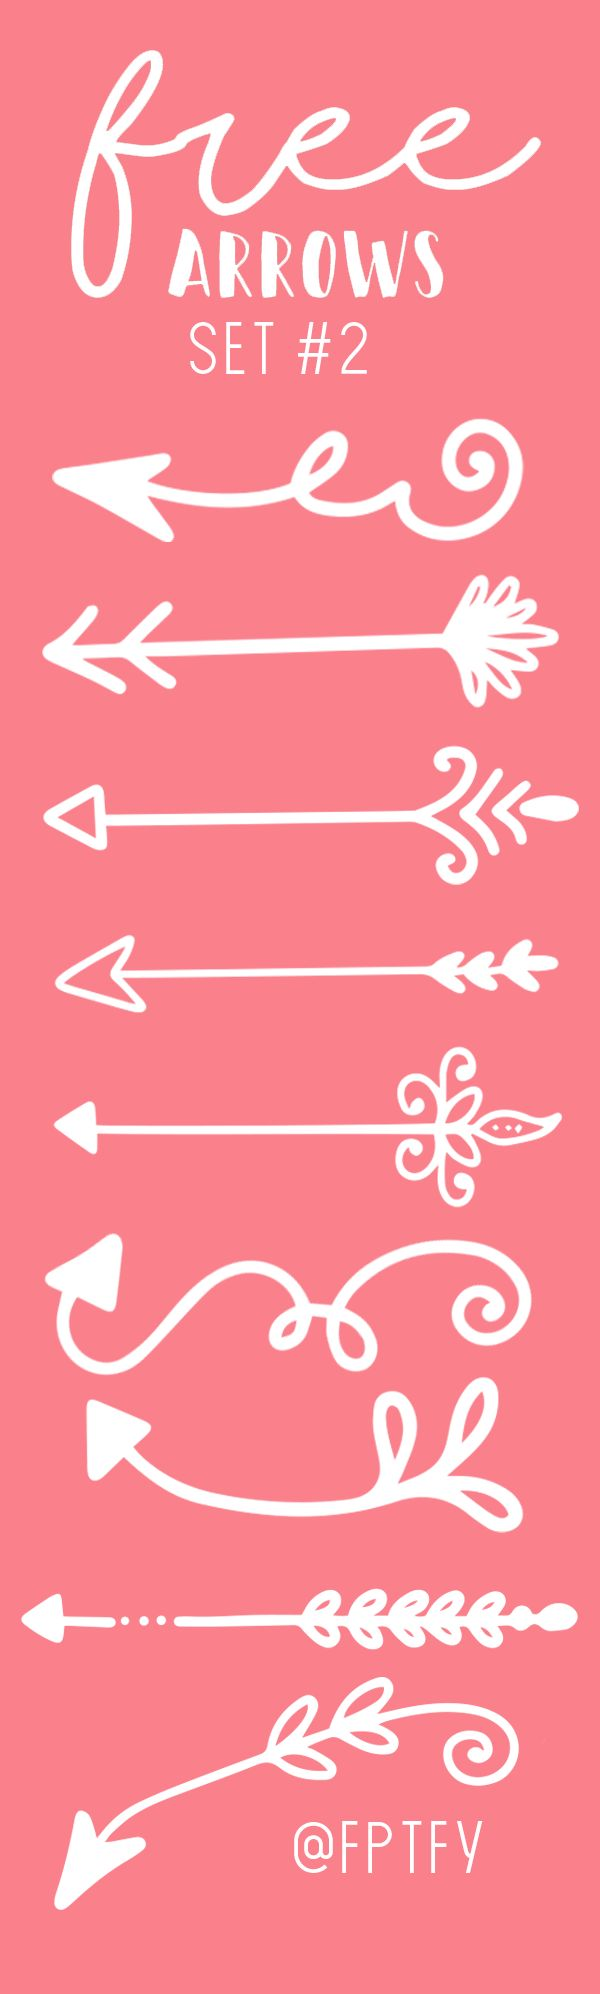 Free Hand Drawn Arrows Set #2